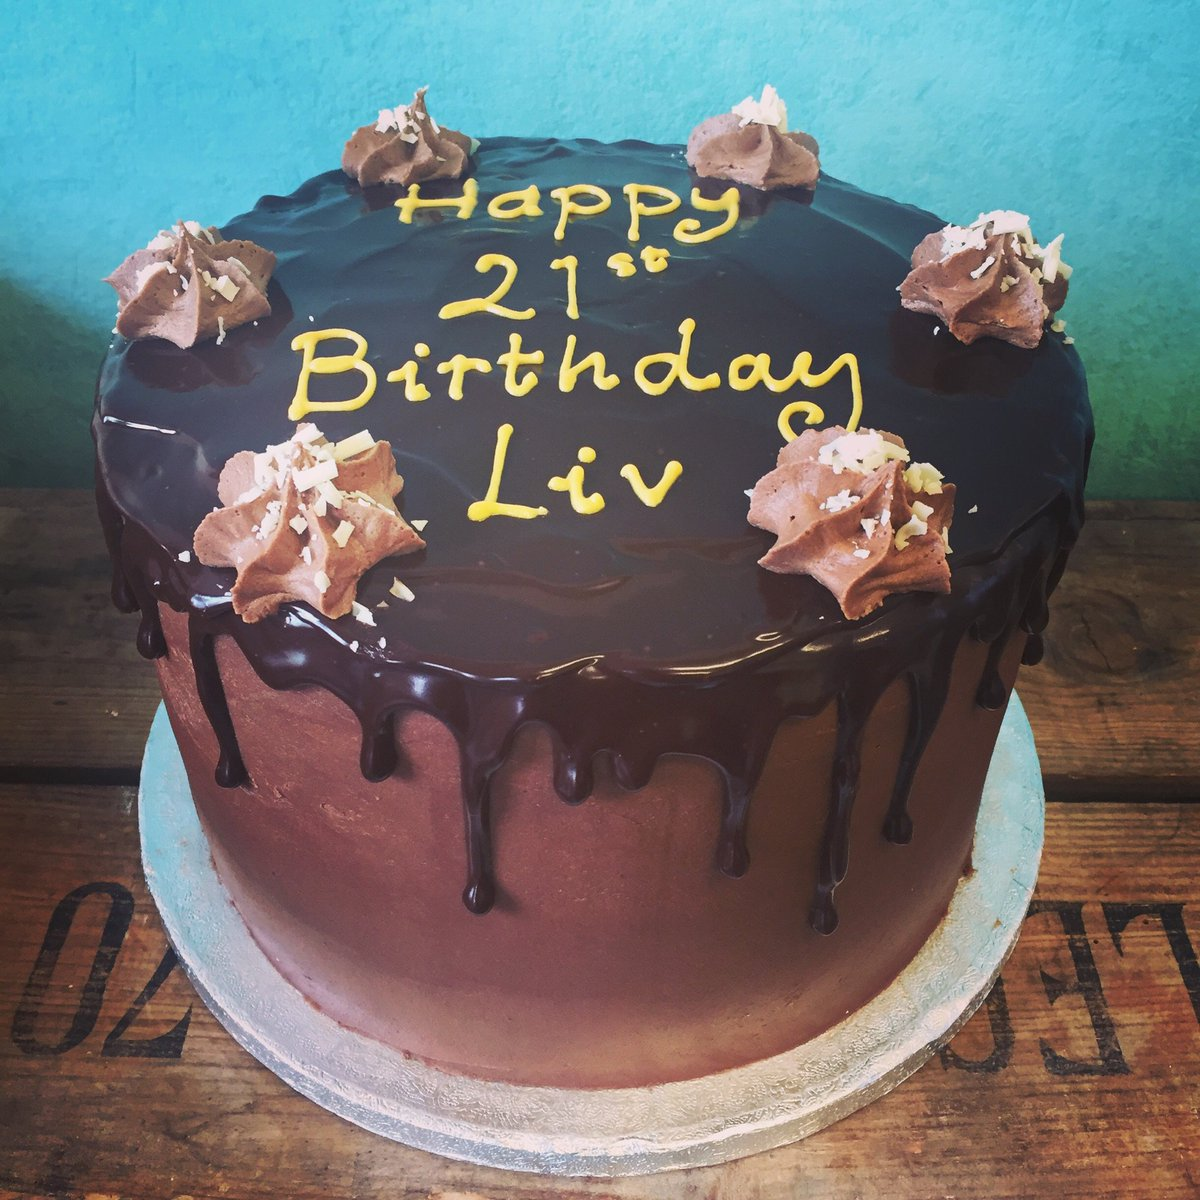 Little Bee Bakery On Twitter Our Amazing Chocolate Drip Chocolate